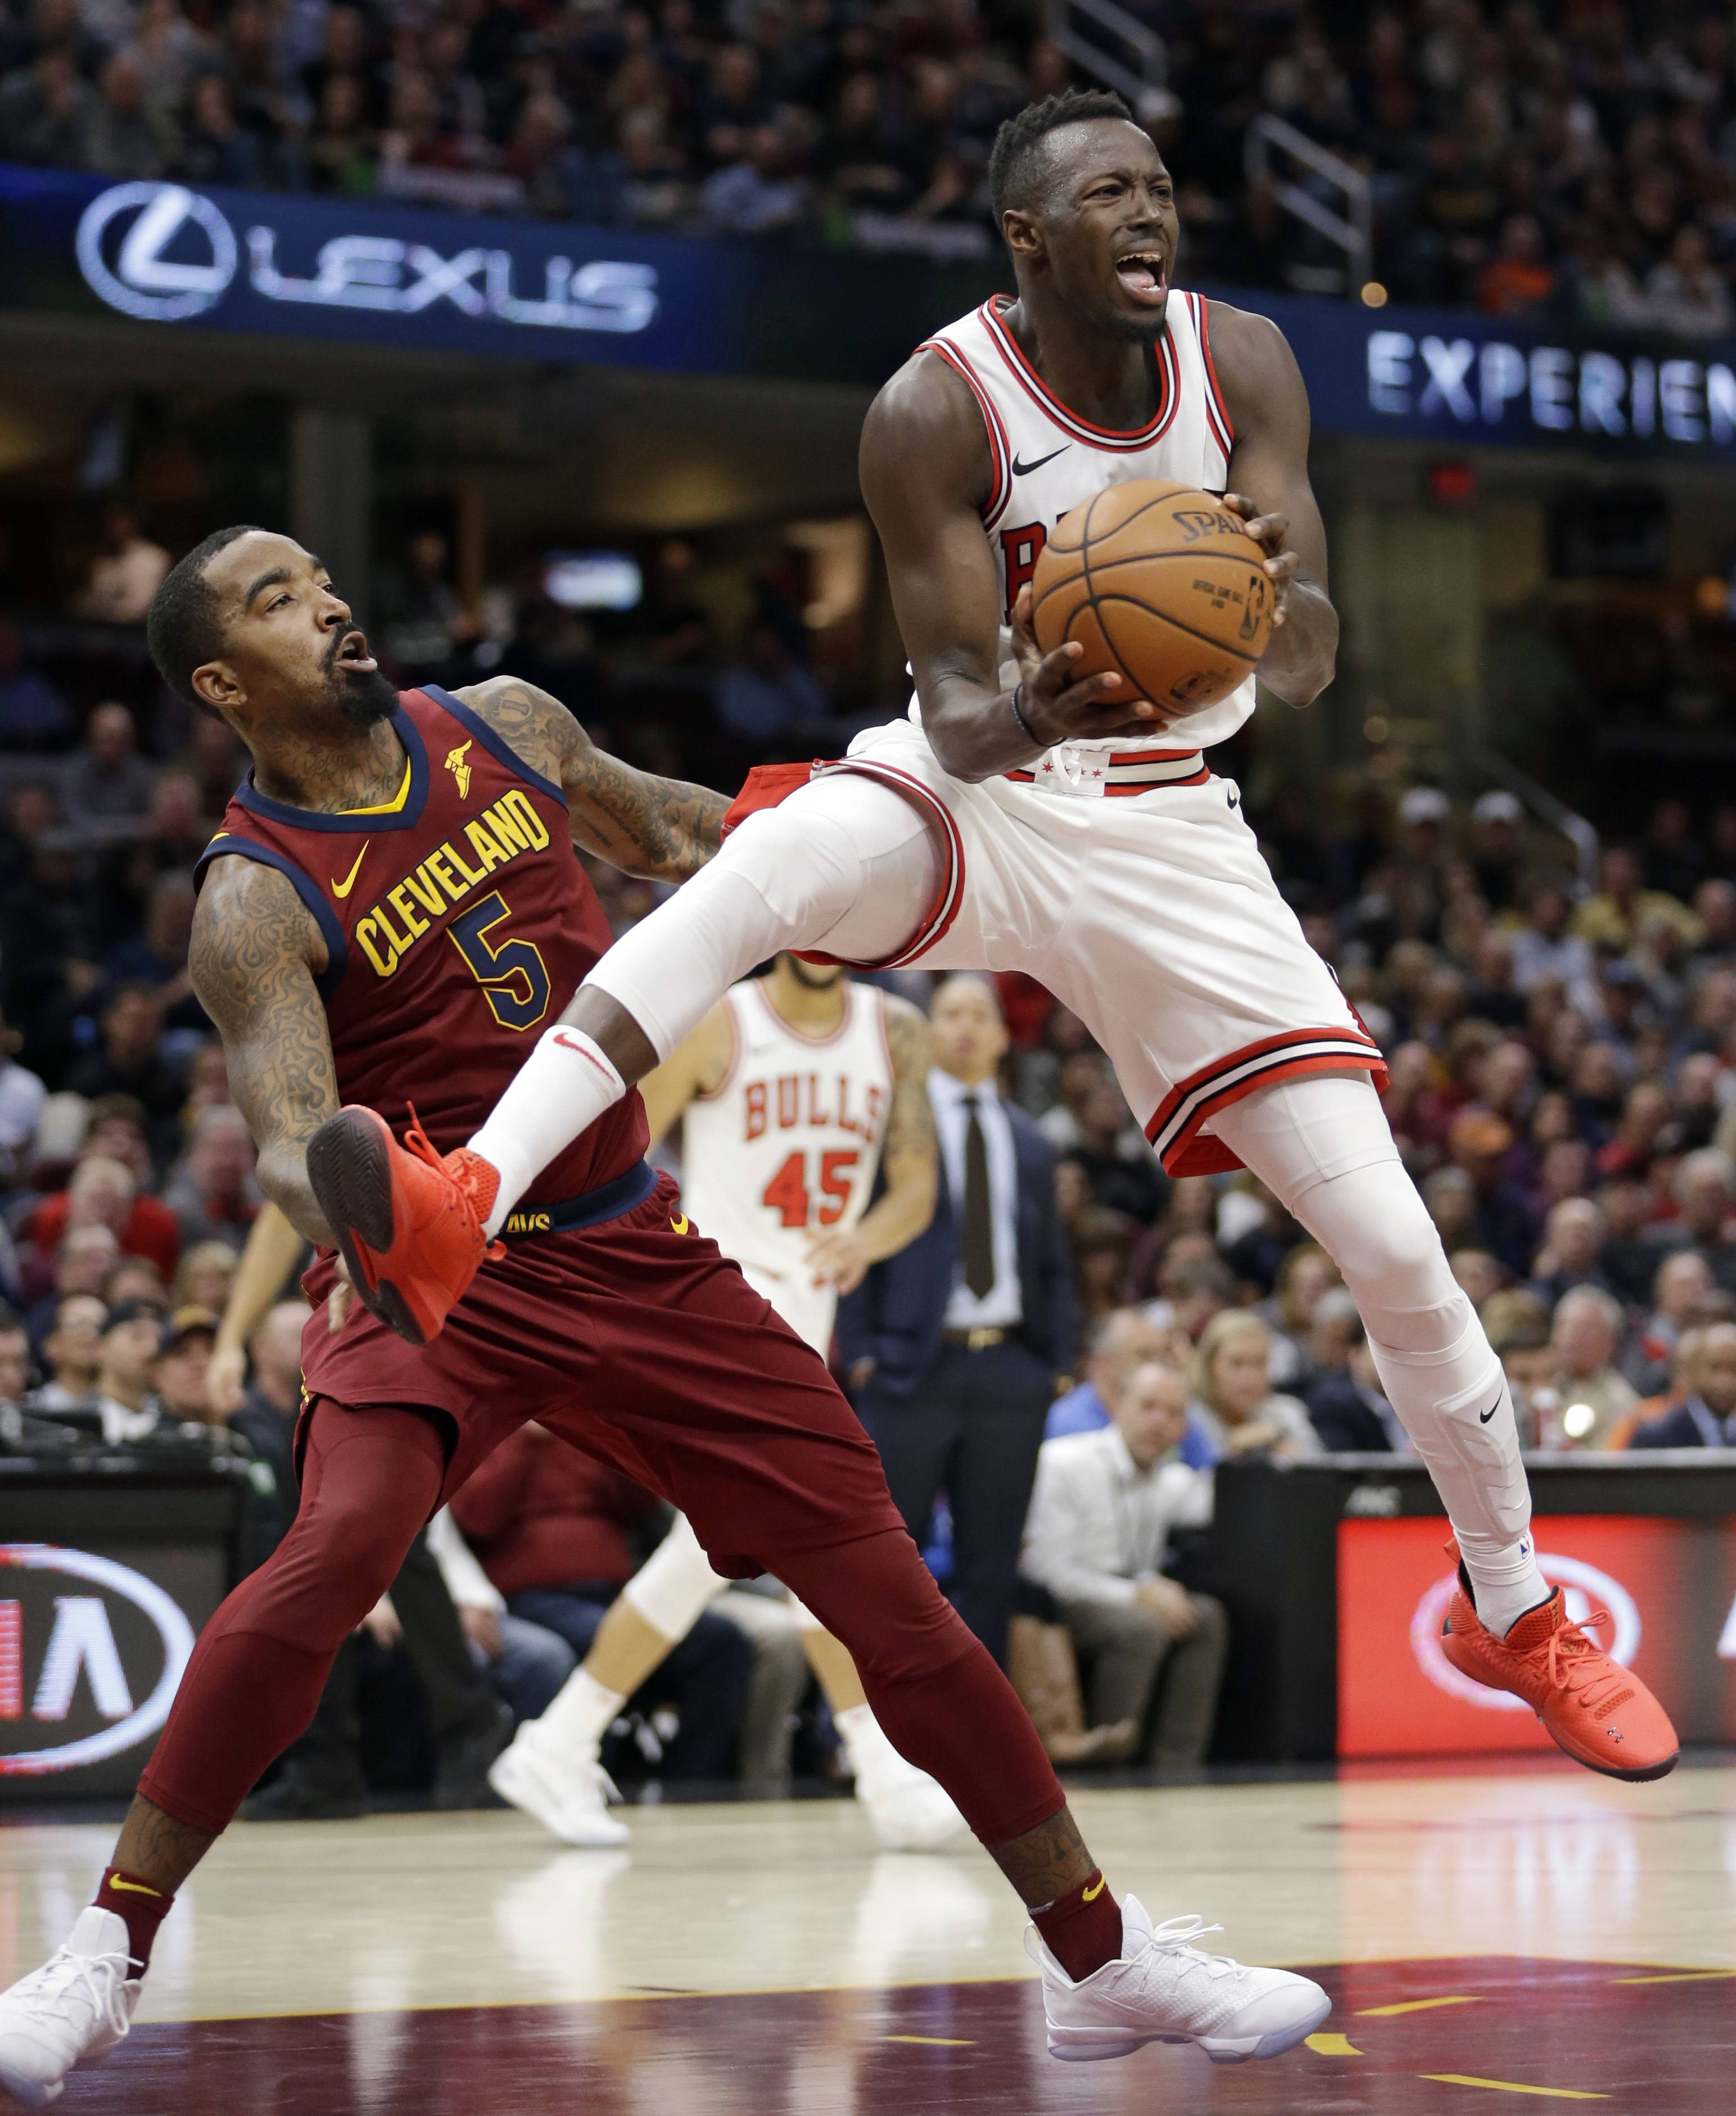 Maybe Jerian Grant is Bulls' true point guard of future